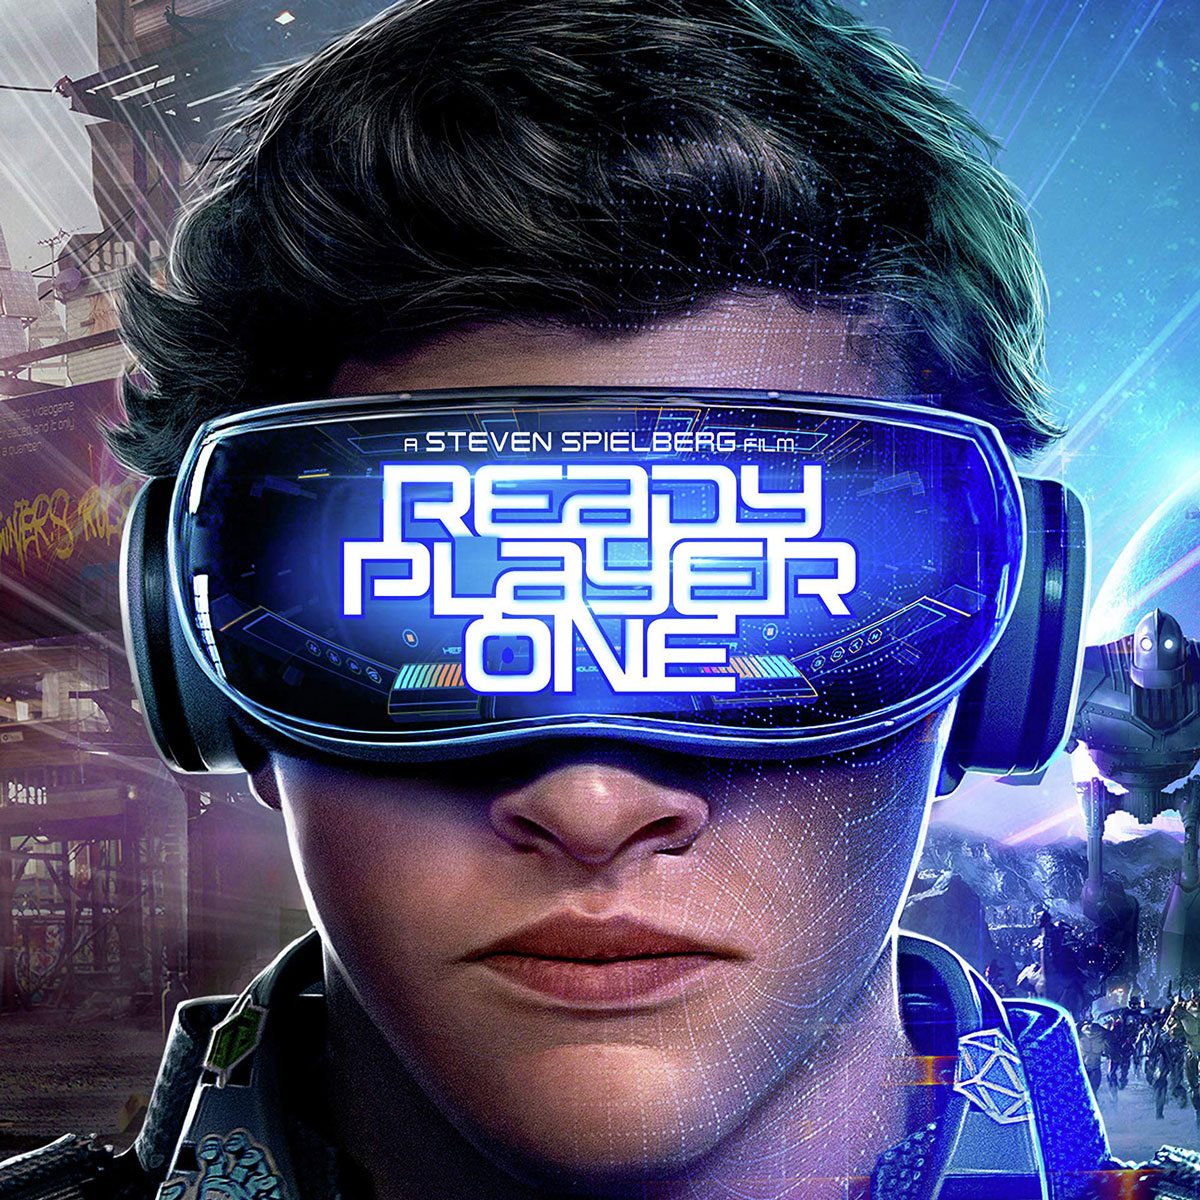 Ready Player One main character with VR headset